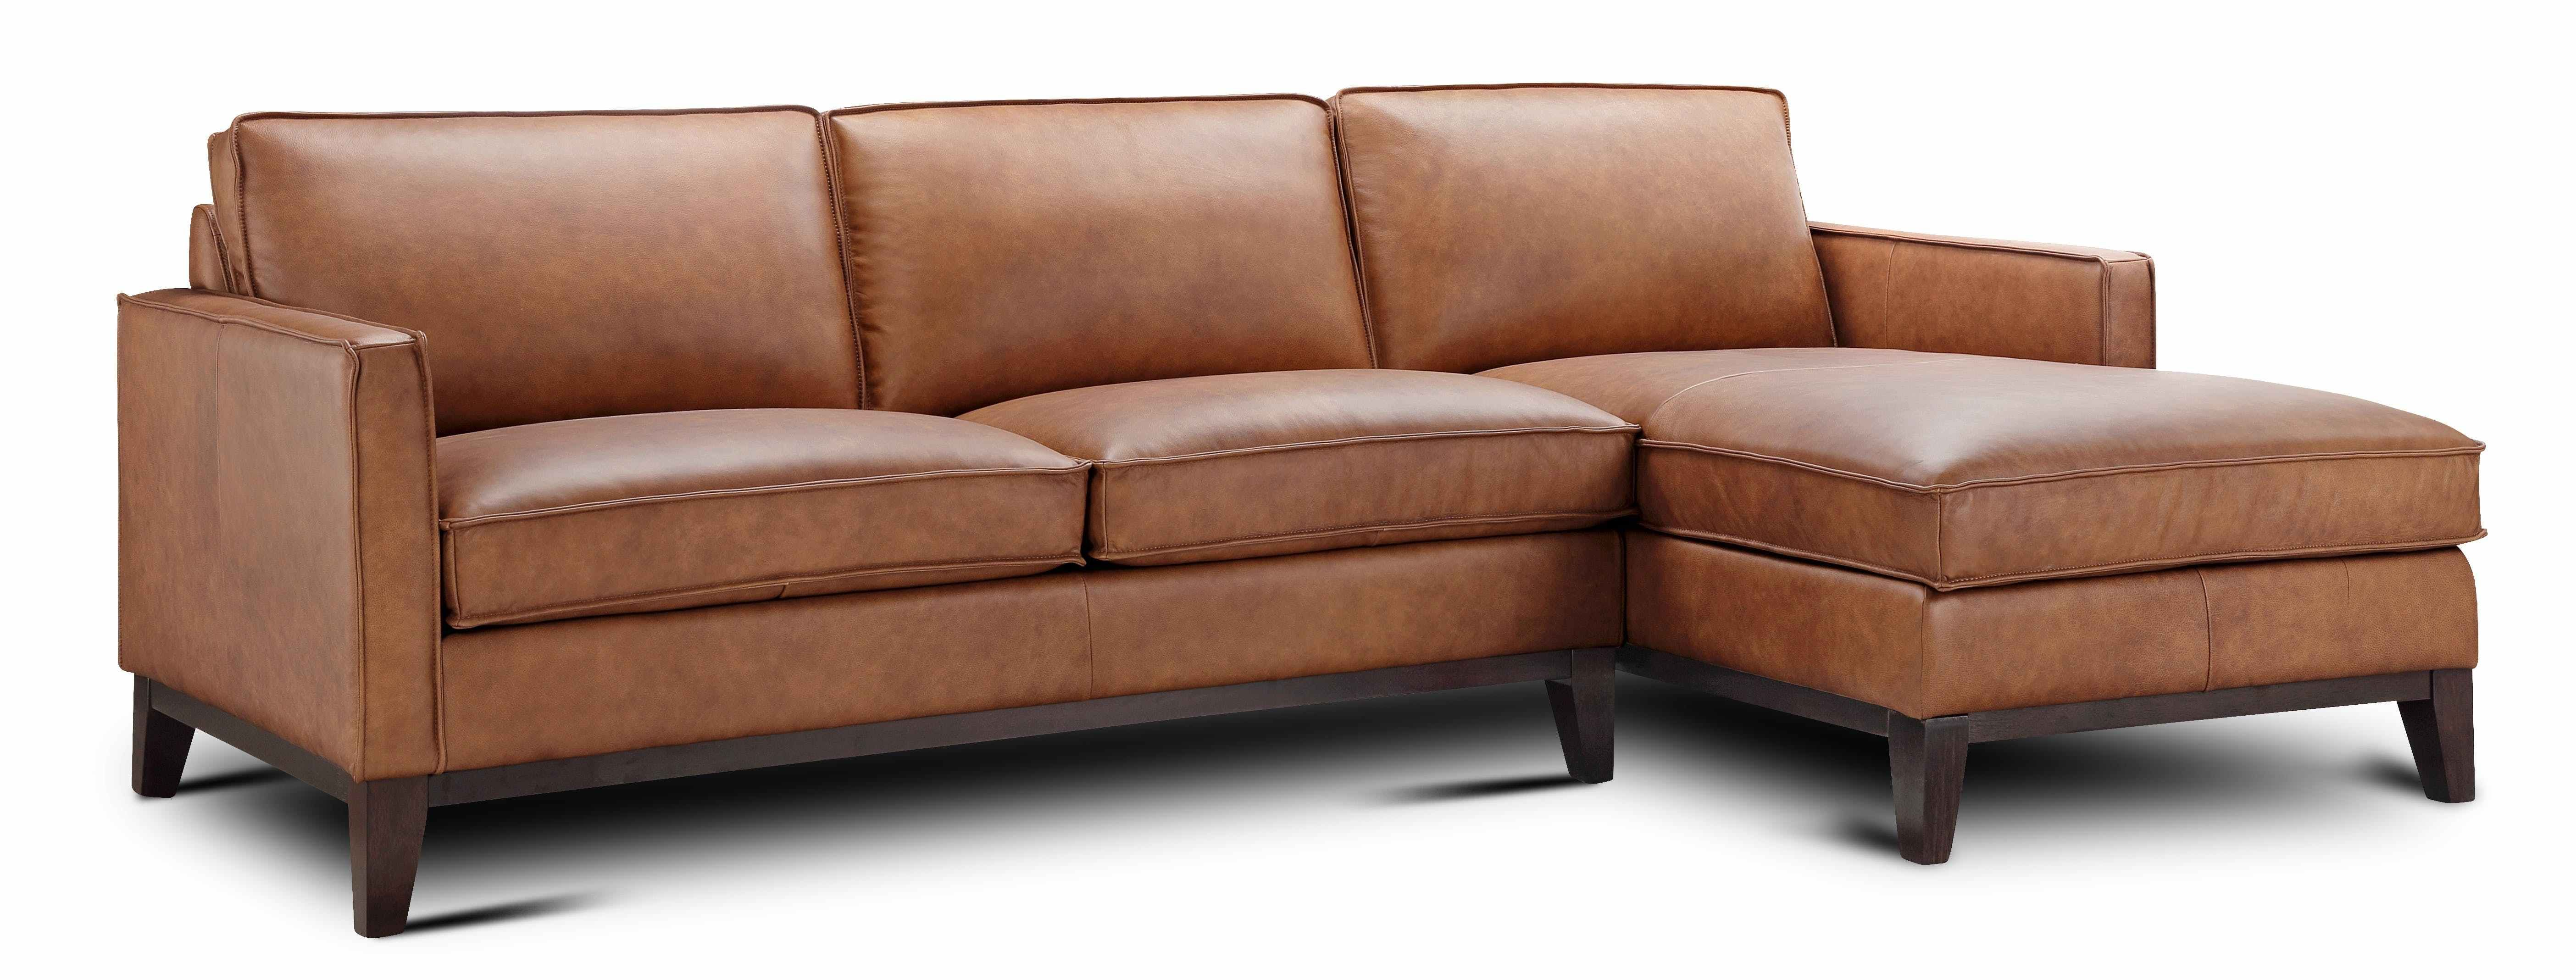 Allure Justin Leather Chaise Sectional